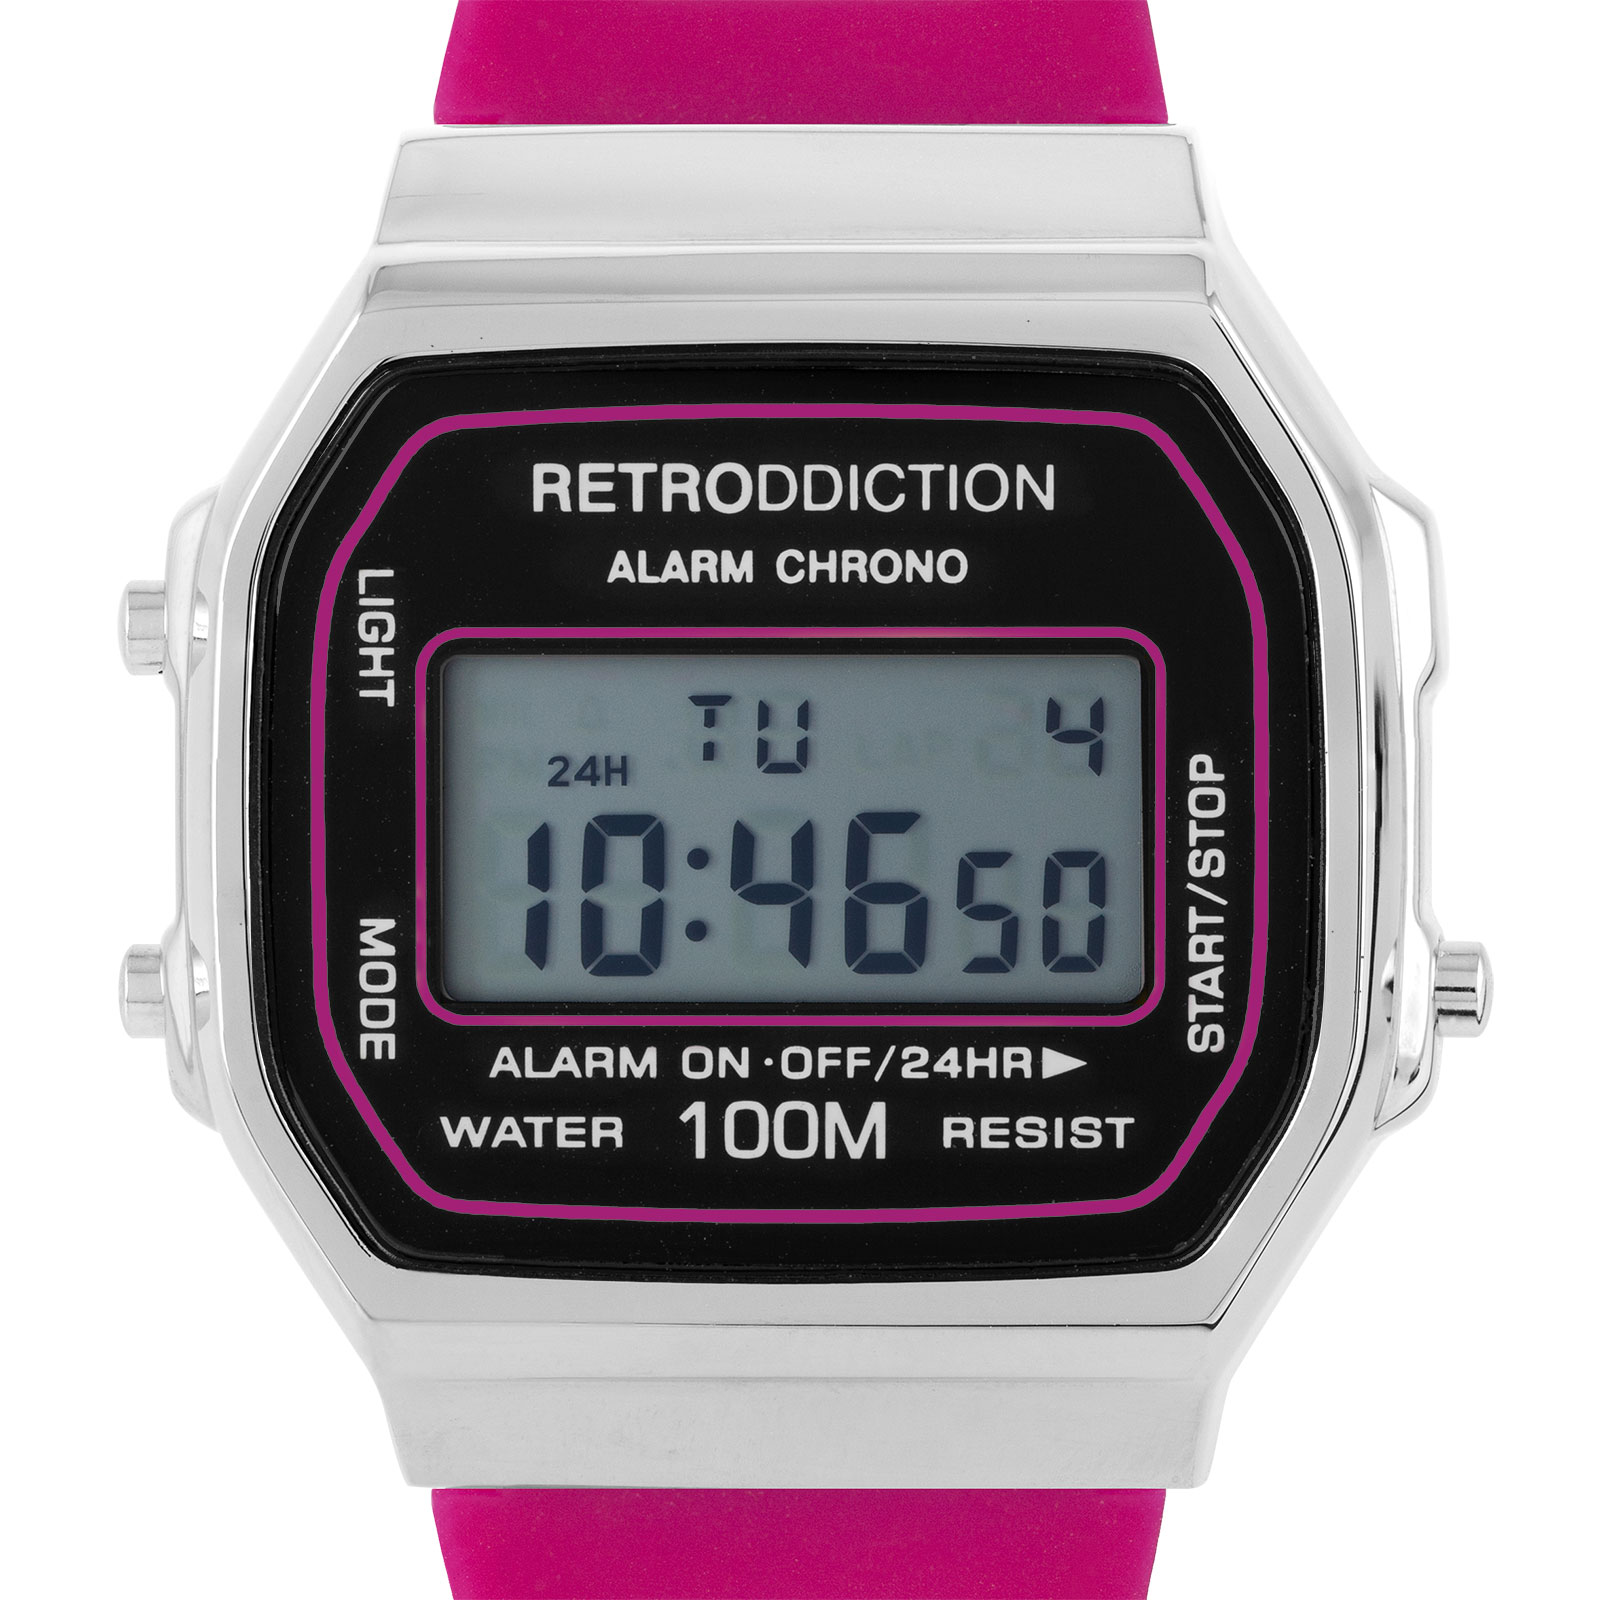 Retroddiction #18 - digitalklocka m. cerise gummiband